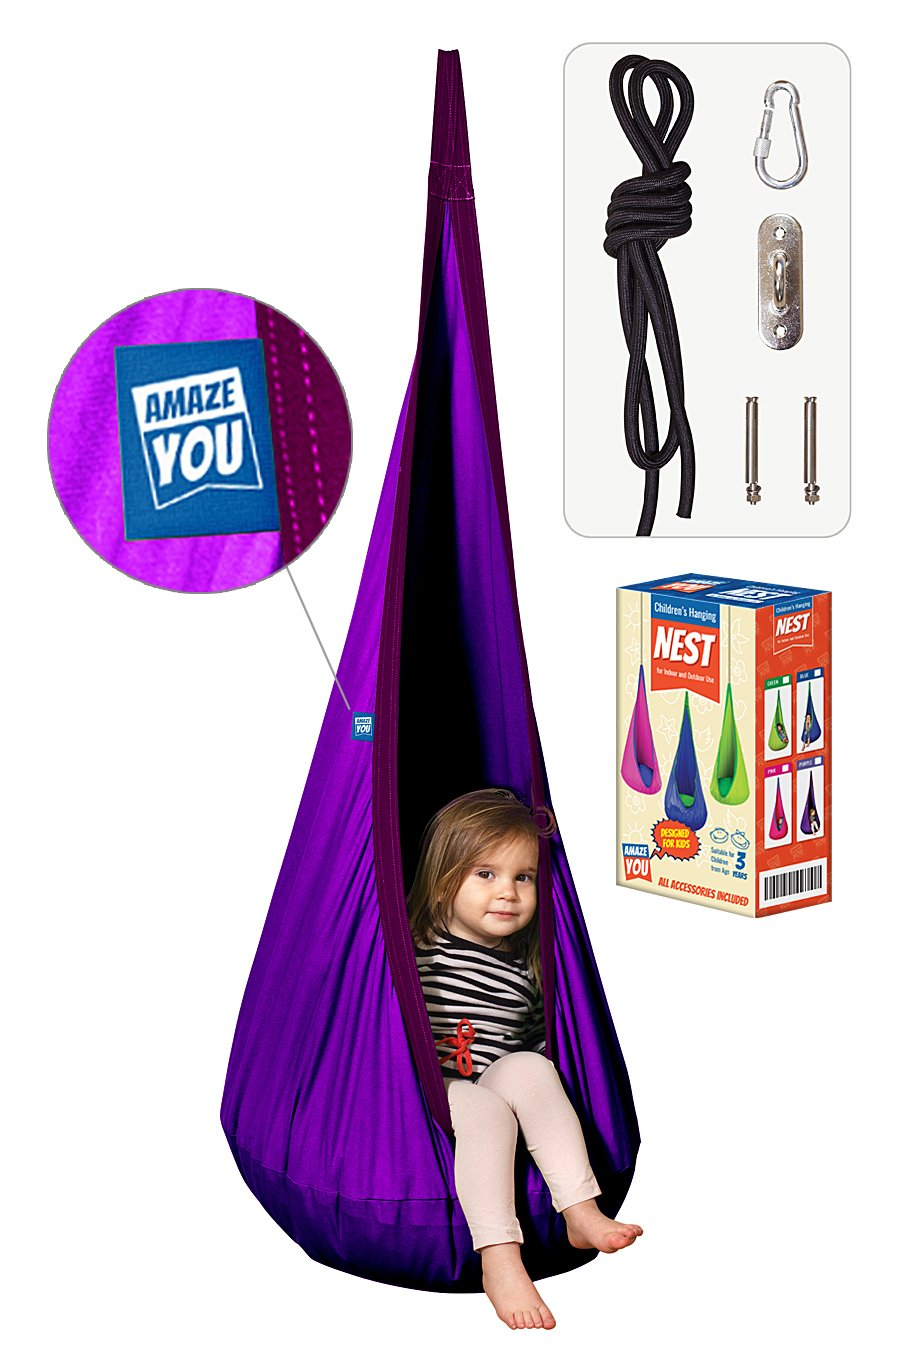 Amazeyou Kids Swing Hammock Pod Chair - Child's Rope Hanging Sensory Seat Nest for Indoor and Outdoor Use - Great for Children, All Accessories Included (Nook Purple) B075NW2JRT パープル パープル